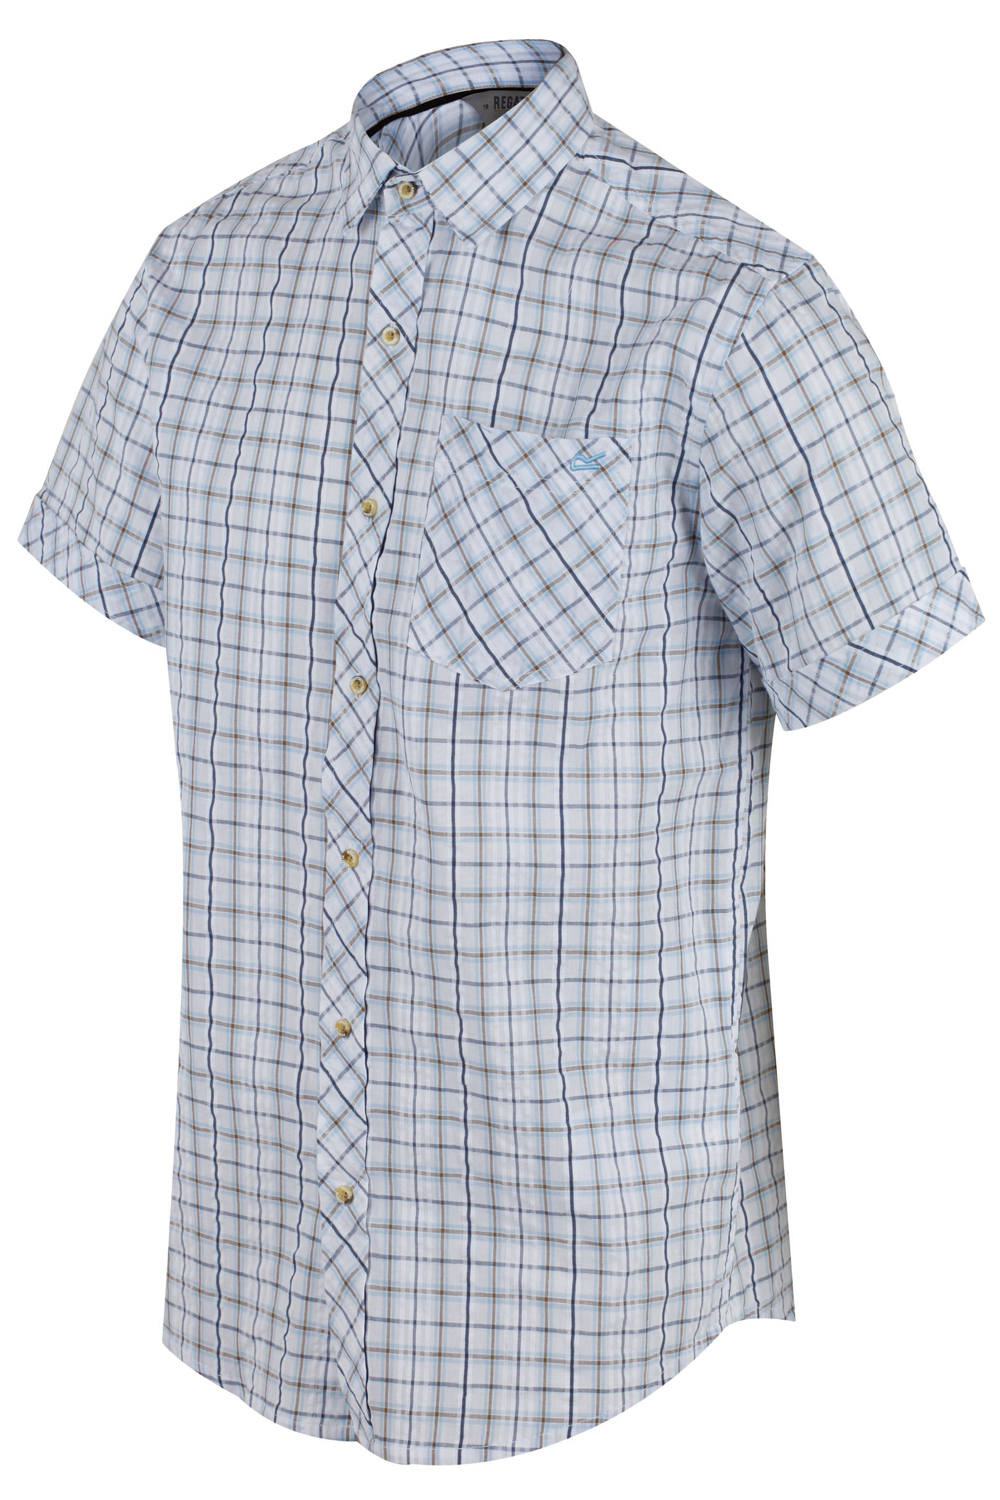 Regatta-Mens-Deakin-II-Coolweave-Cotton-Short-Sleeved-Summer-Check-Shirt-RRP-50 thumbnail 19